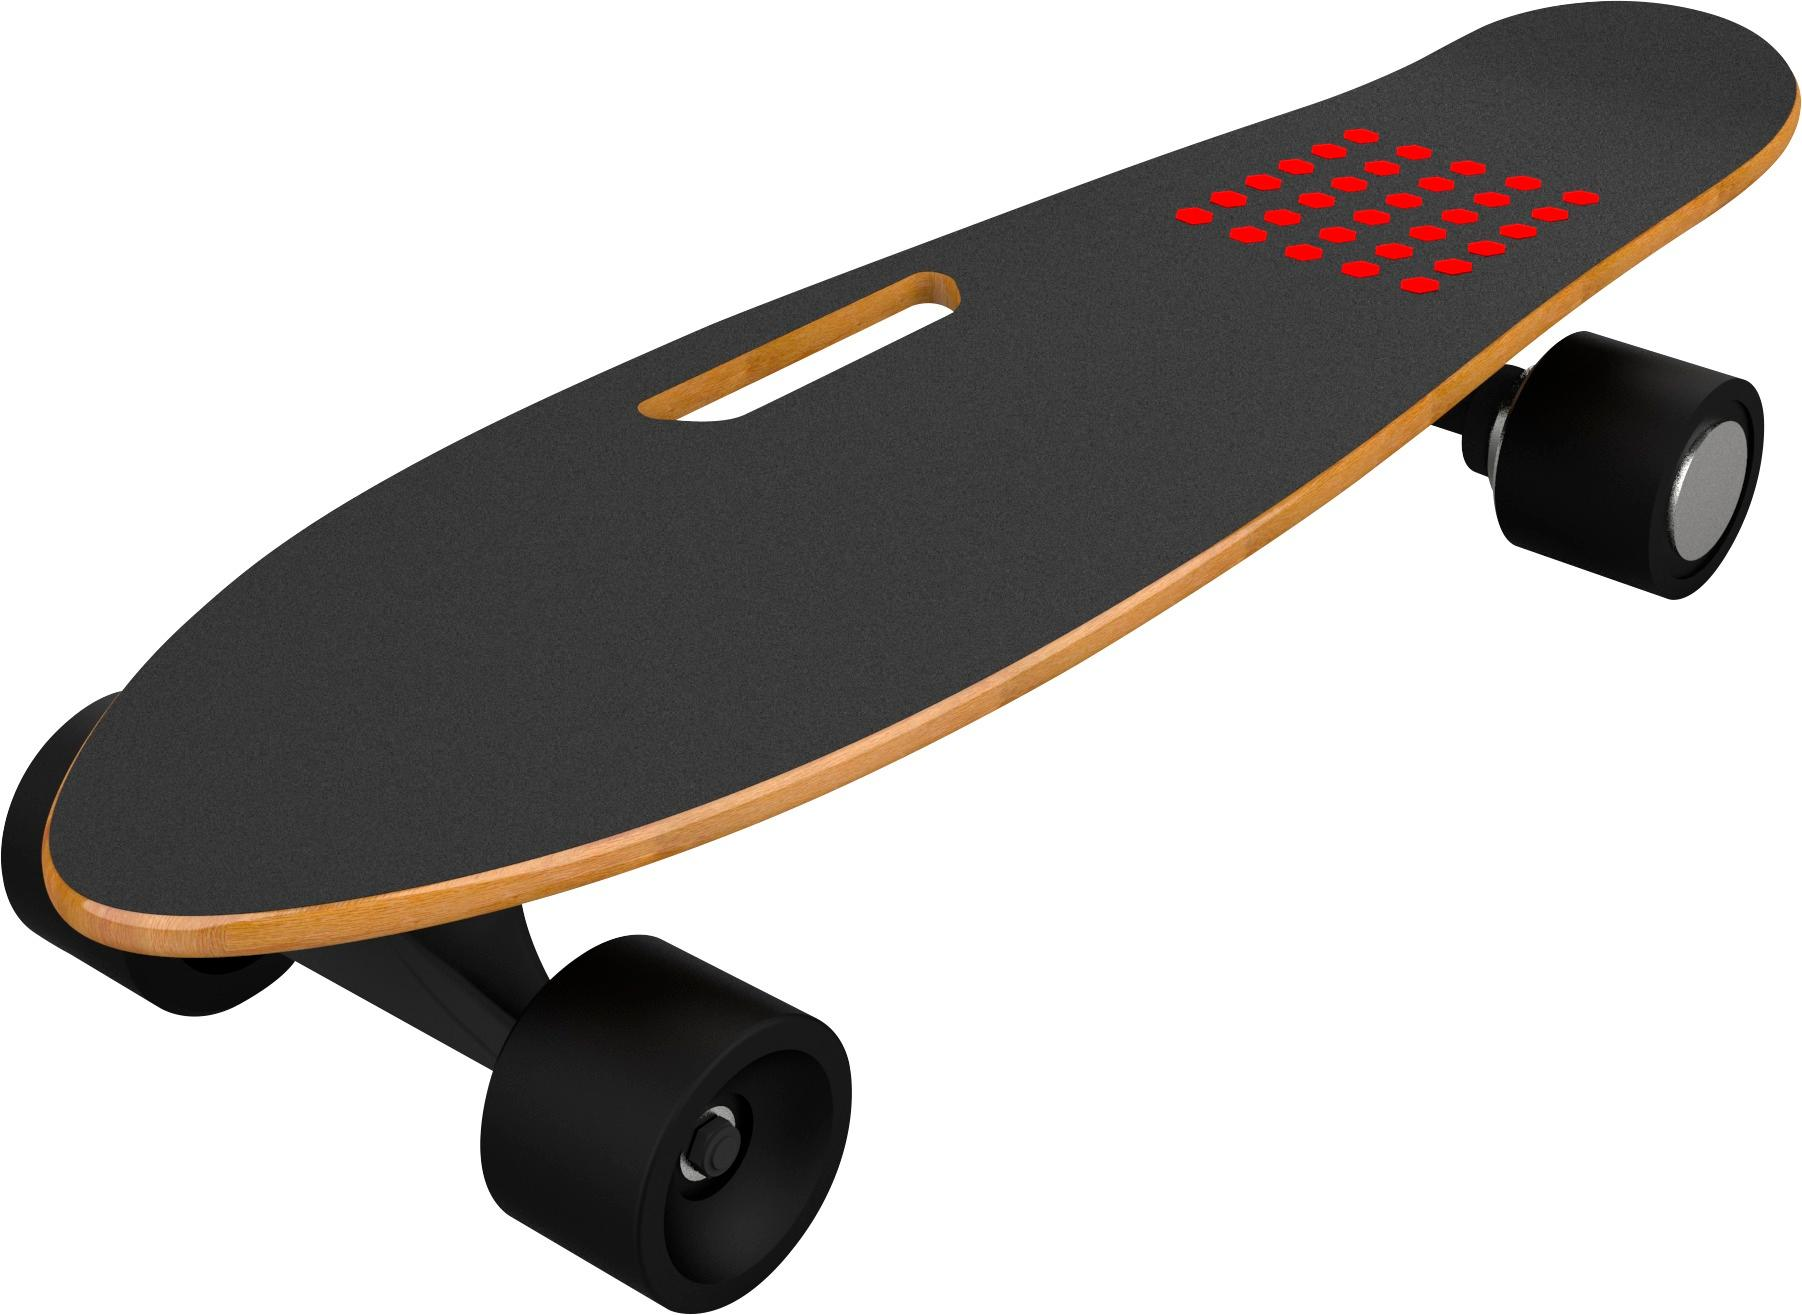 Skateboard Market 2019 Overview, Rising Demand and Forecast Till 2026